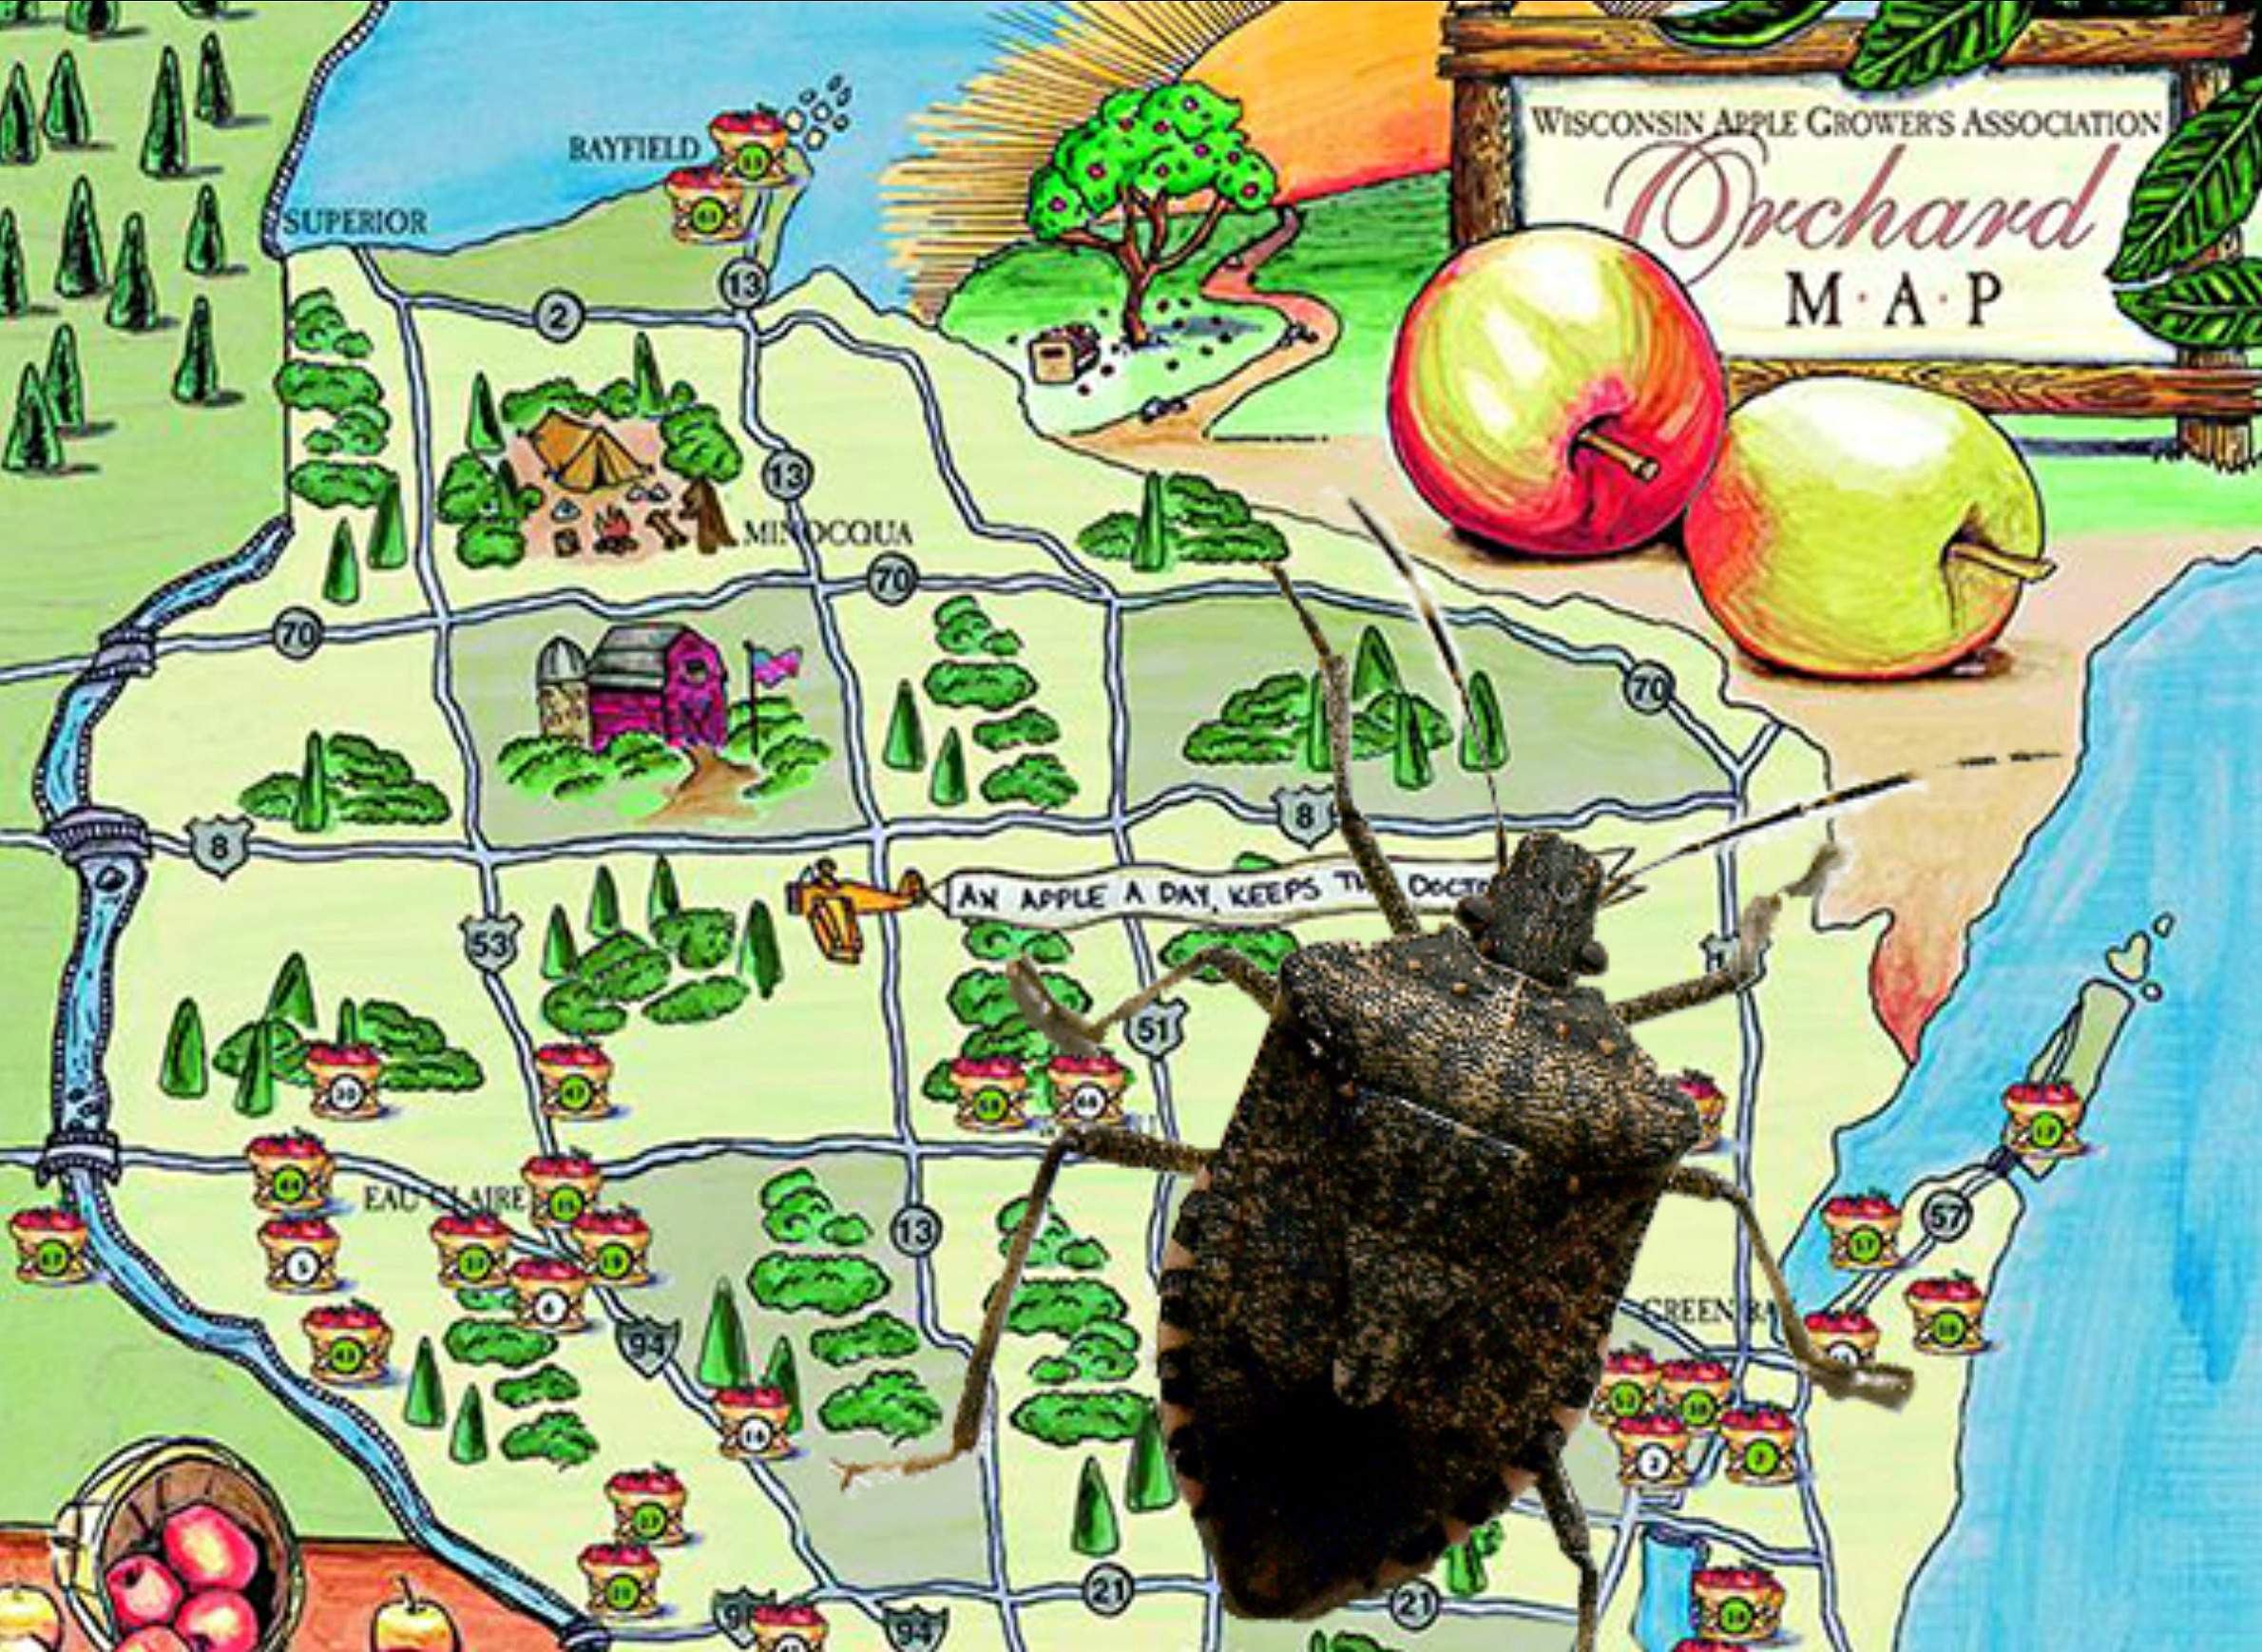 Brown marmorated stink bug spreads in Wisconsin